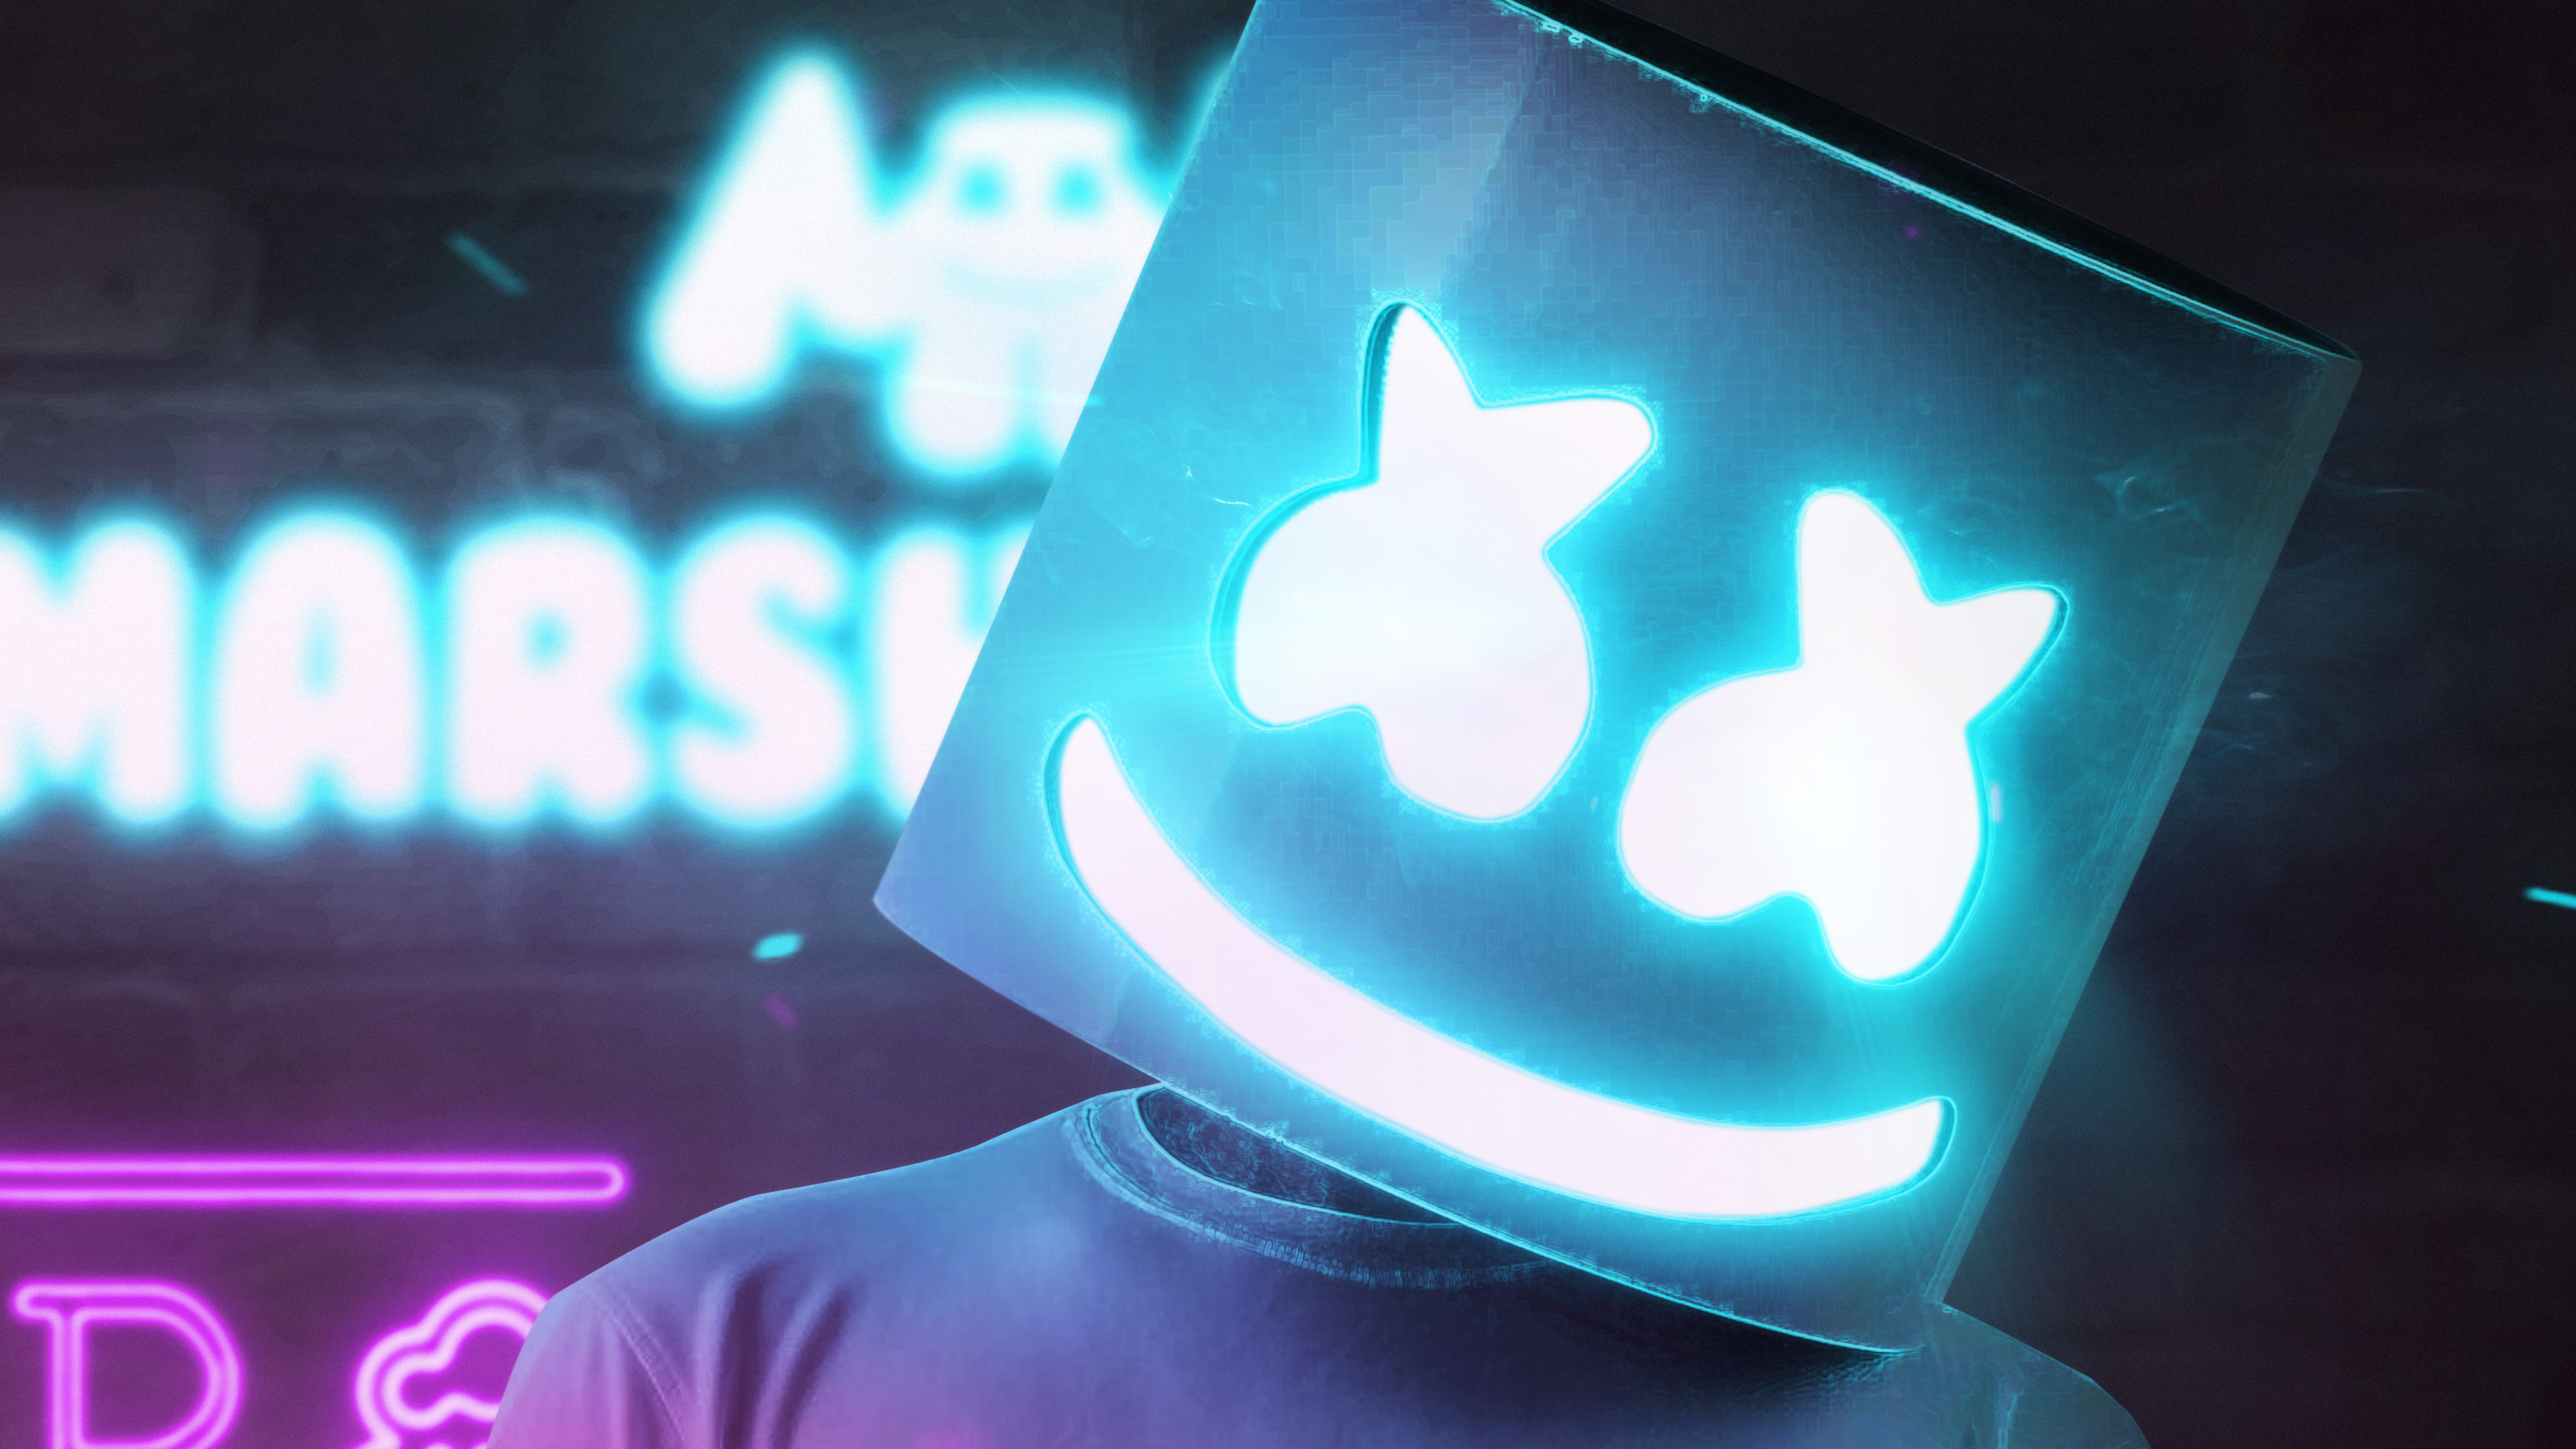 Cool Background Wallpapers 3d Marshmello 4k 2018 Hd Music 4k Wallpapers Images